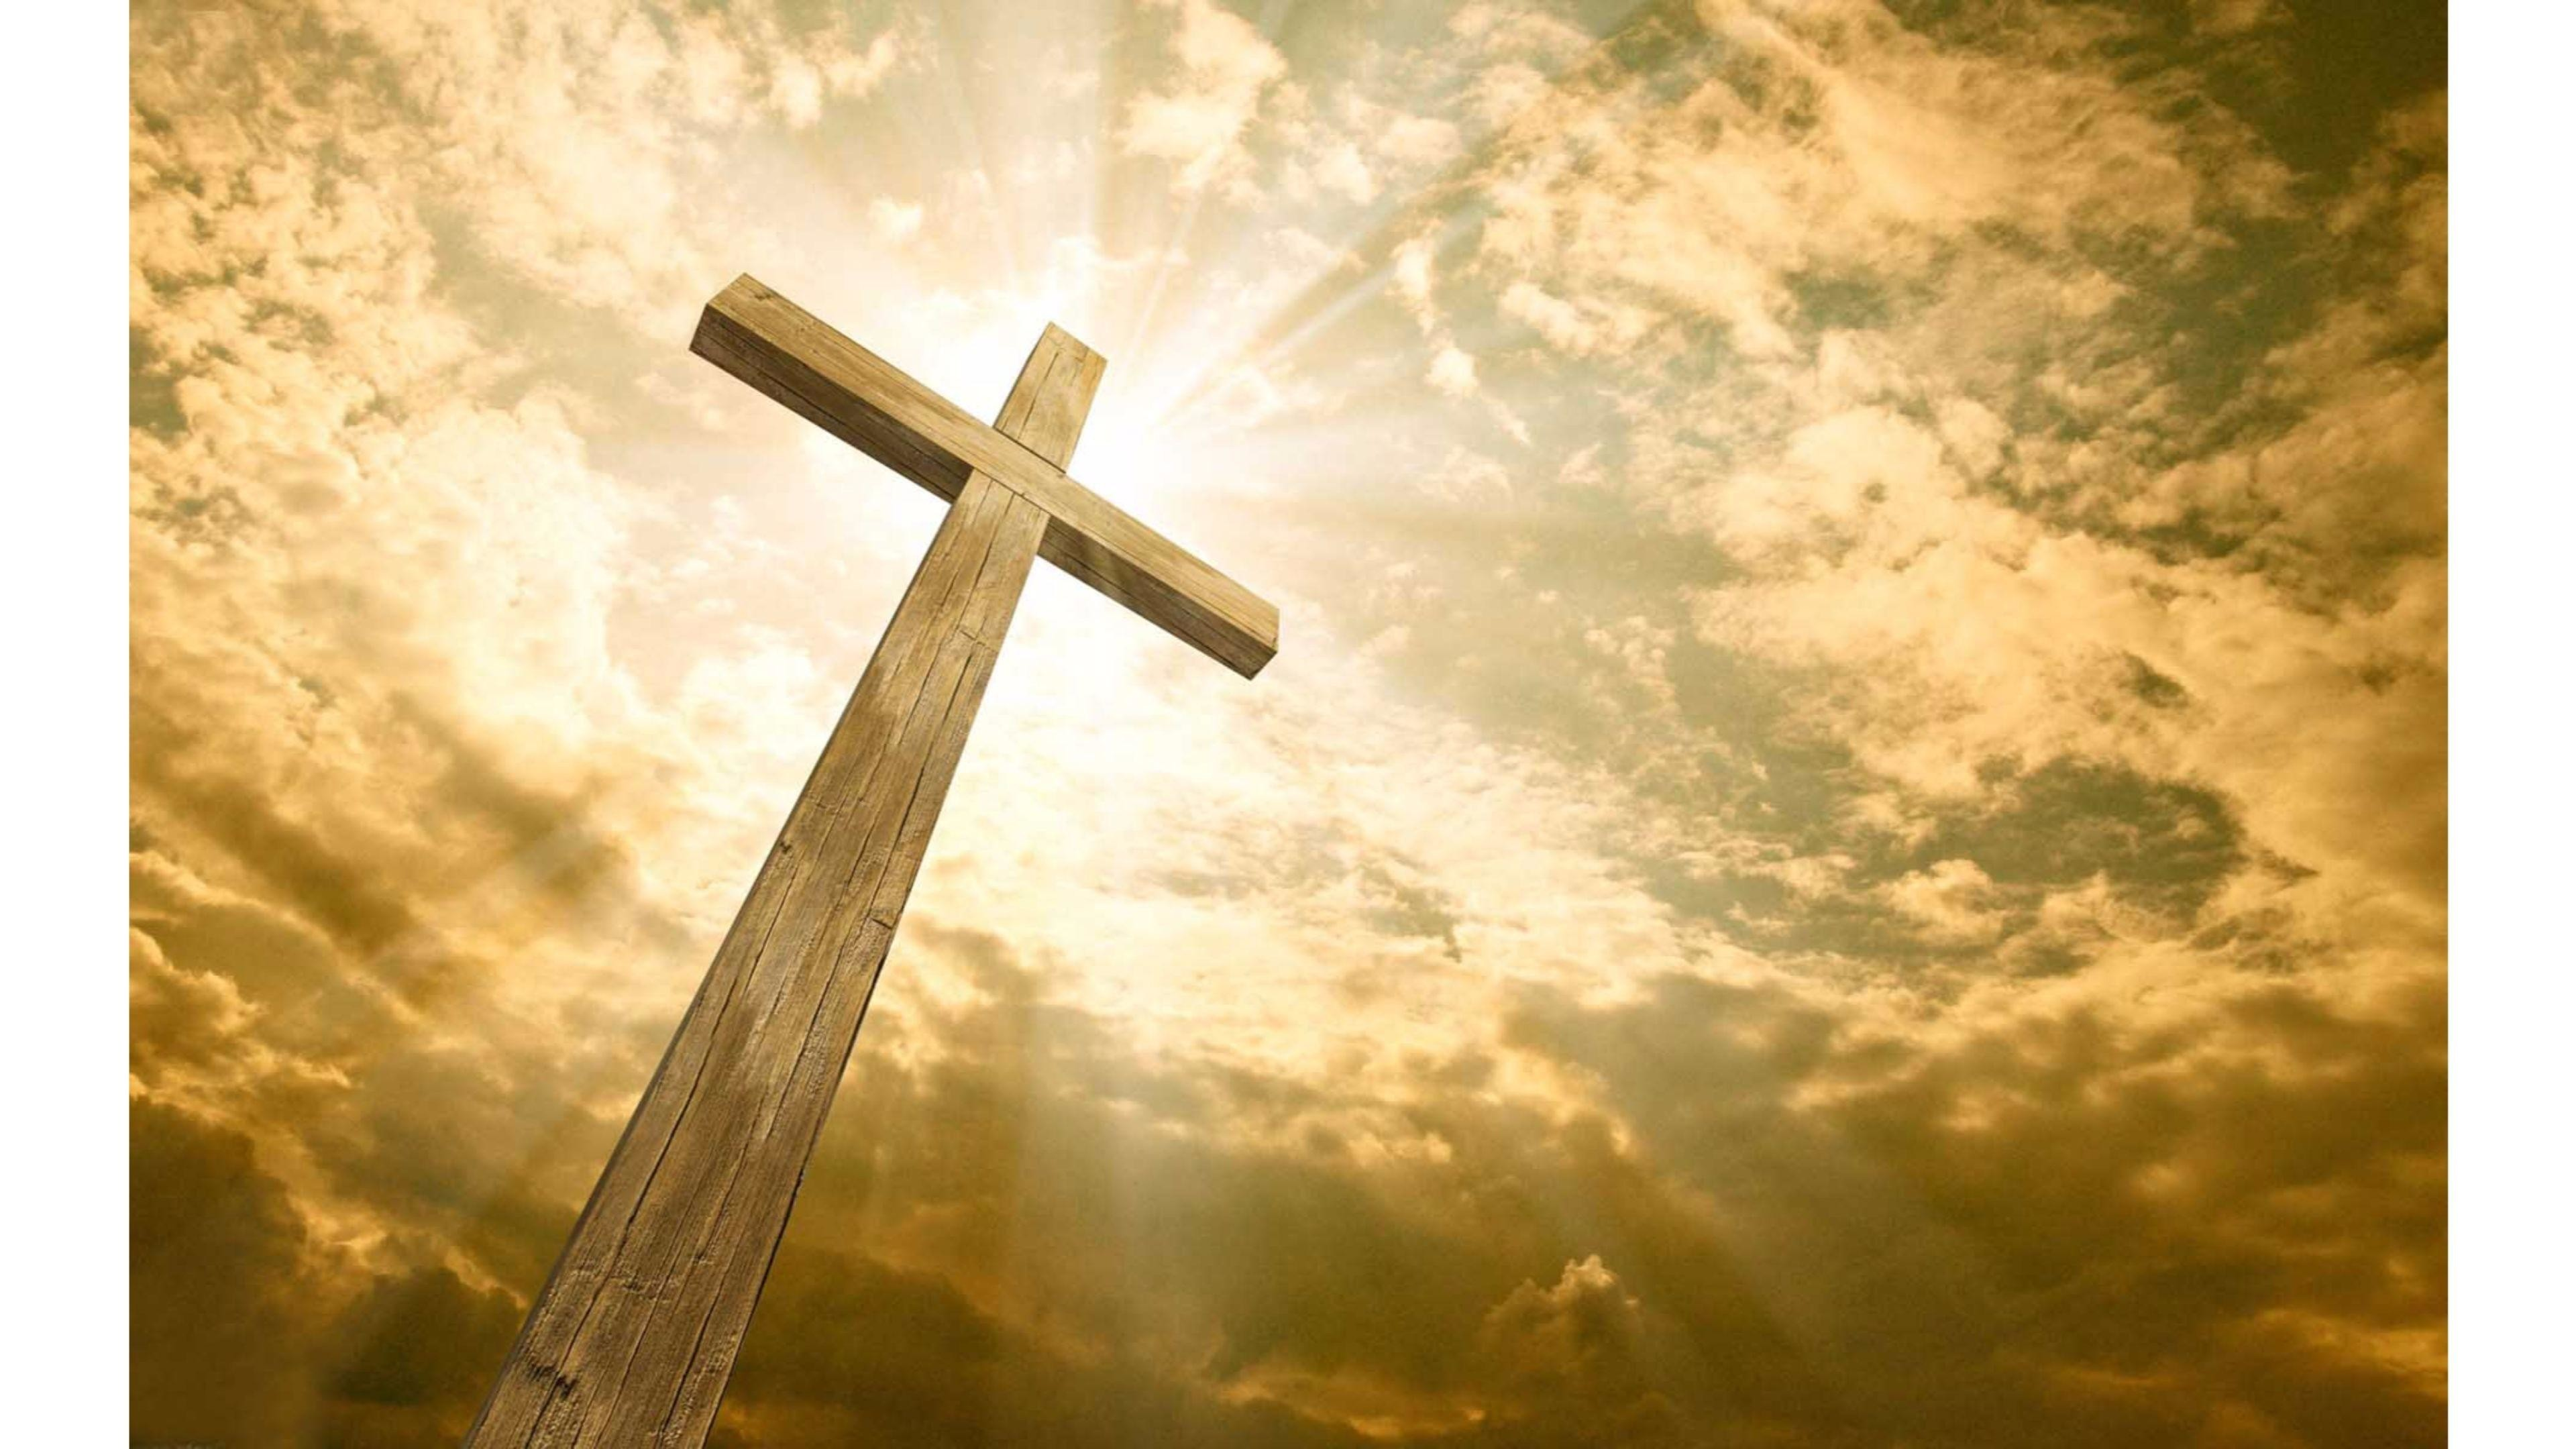 Res: 3840x2160, Download Source · Crucifix Wallpaper Group Pictures 41